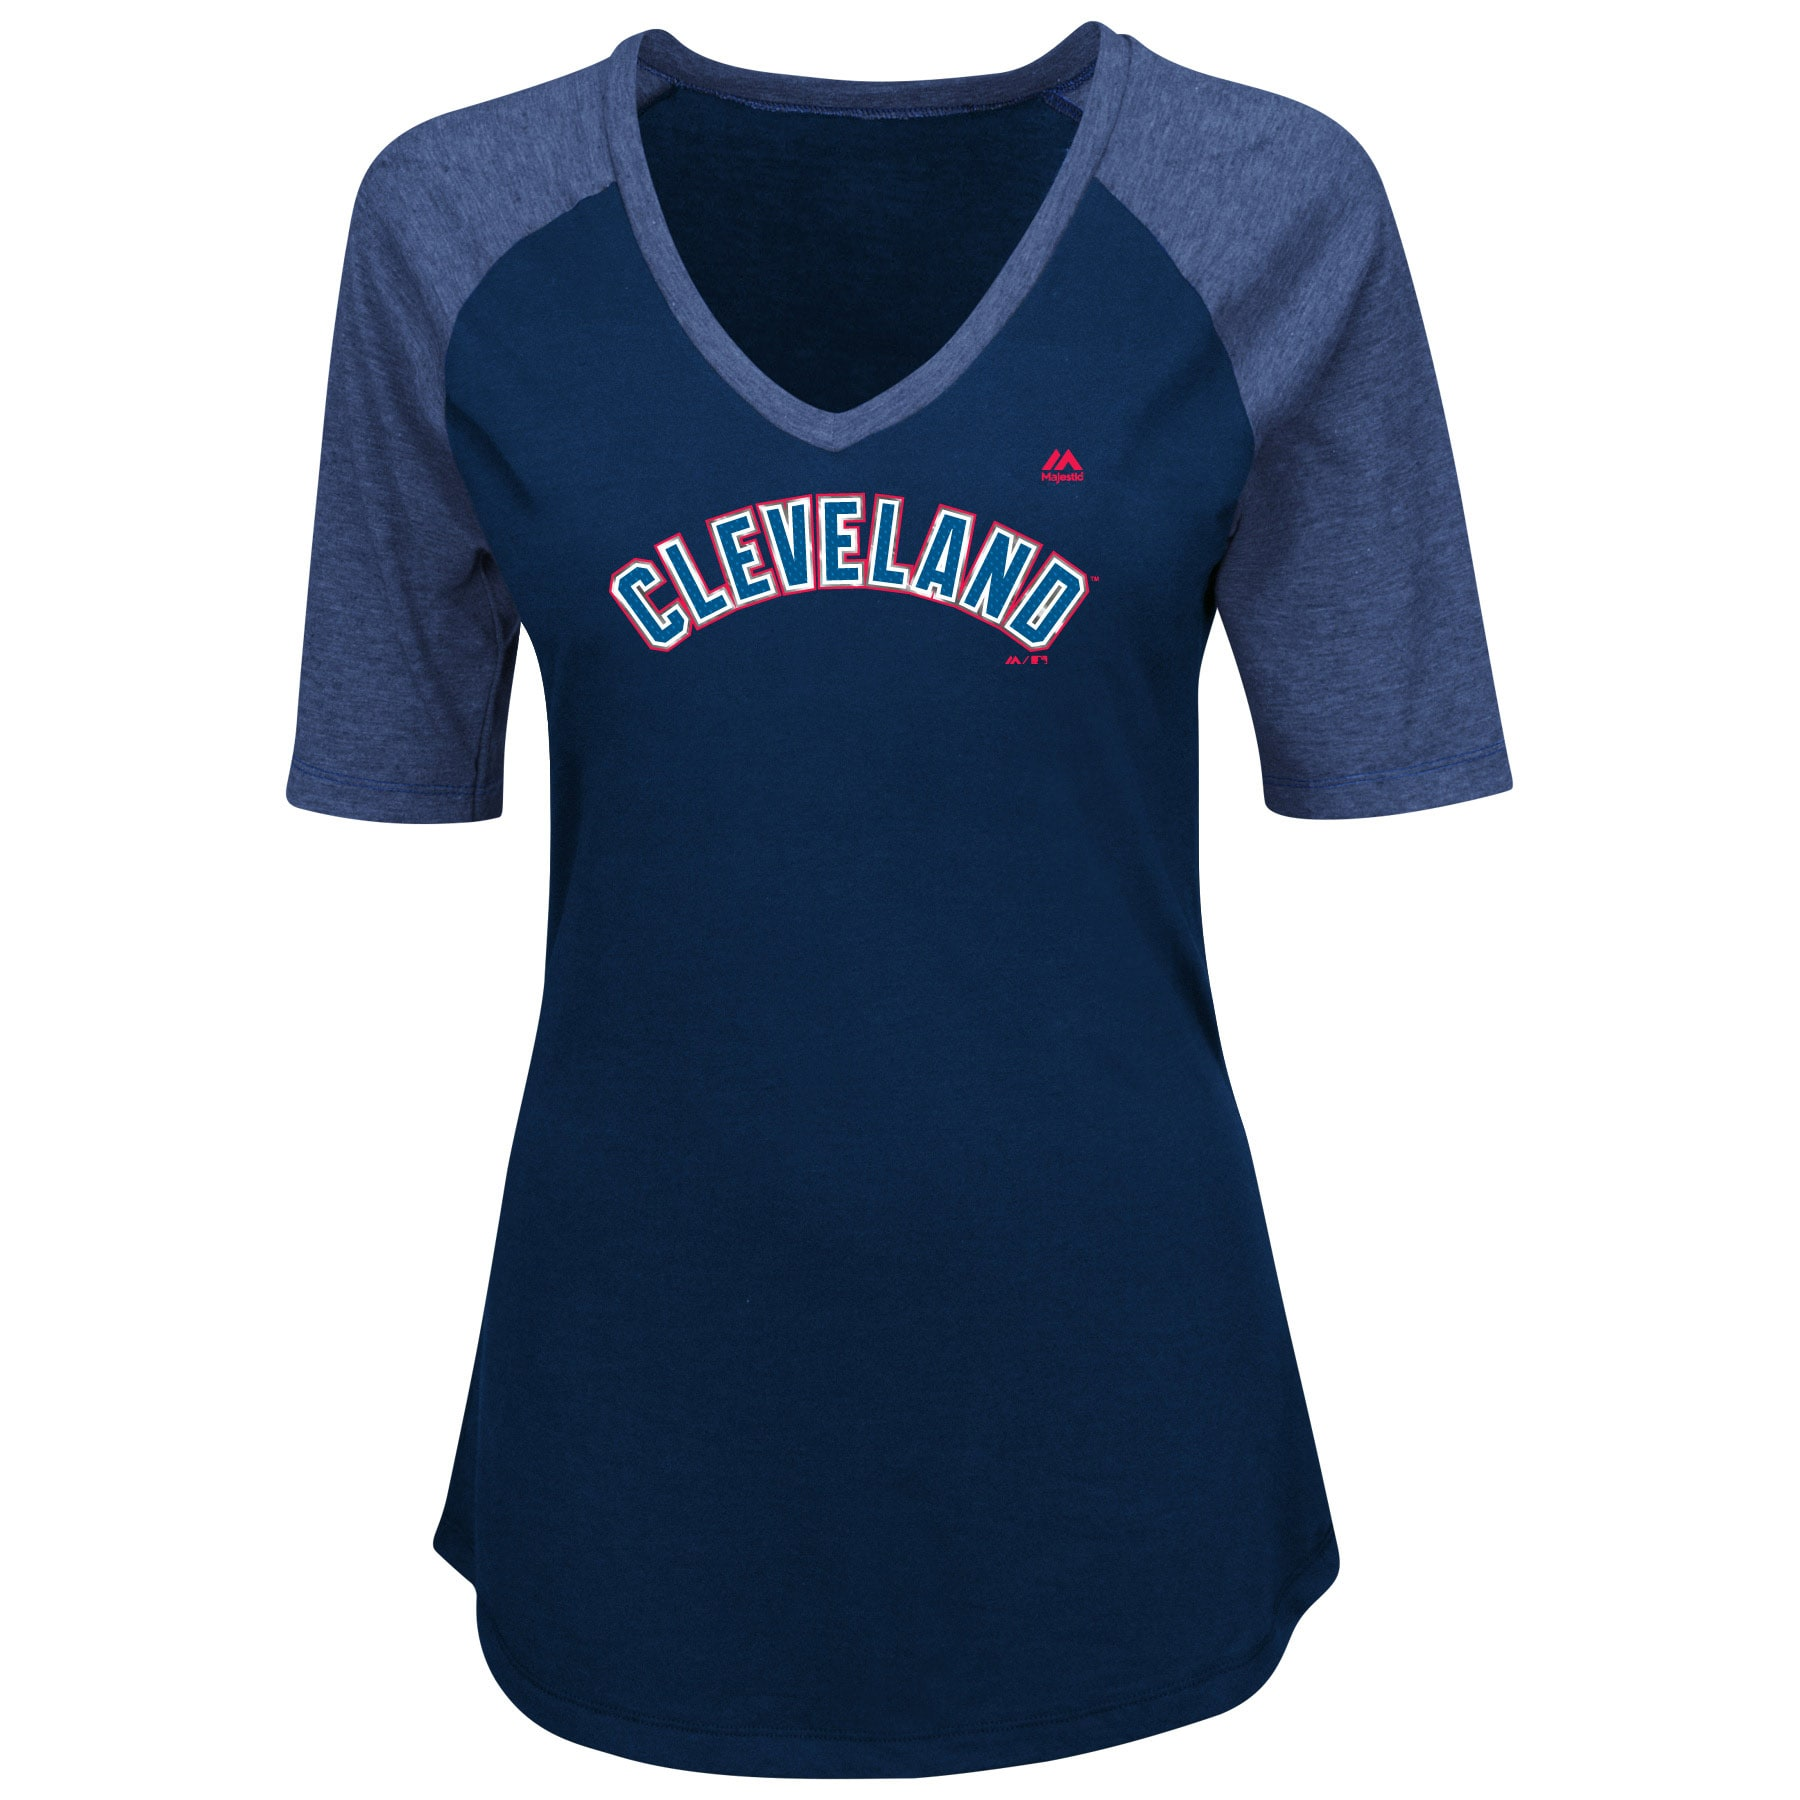 Cleveland Indians Majestic Women's Plus Size Quick Hands Half-Sleeve V-Neck Raglan T-Shirt - Navy